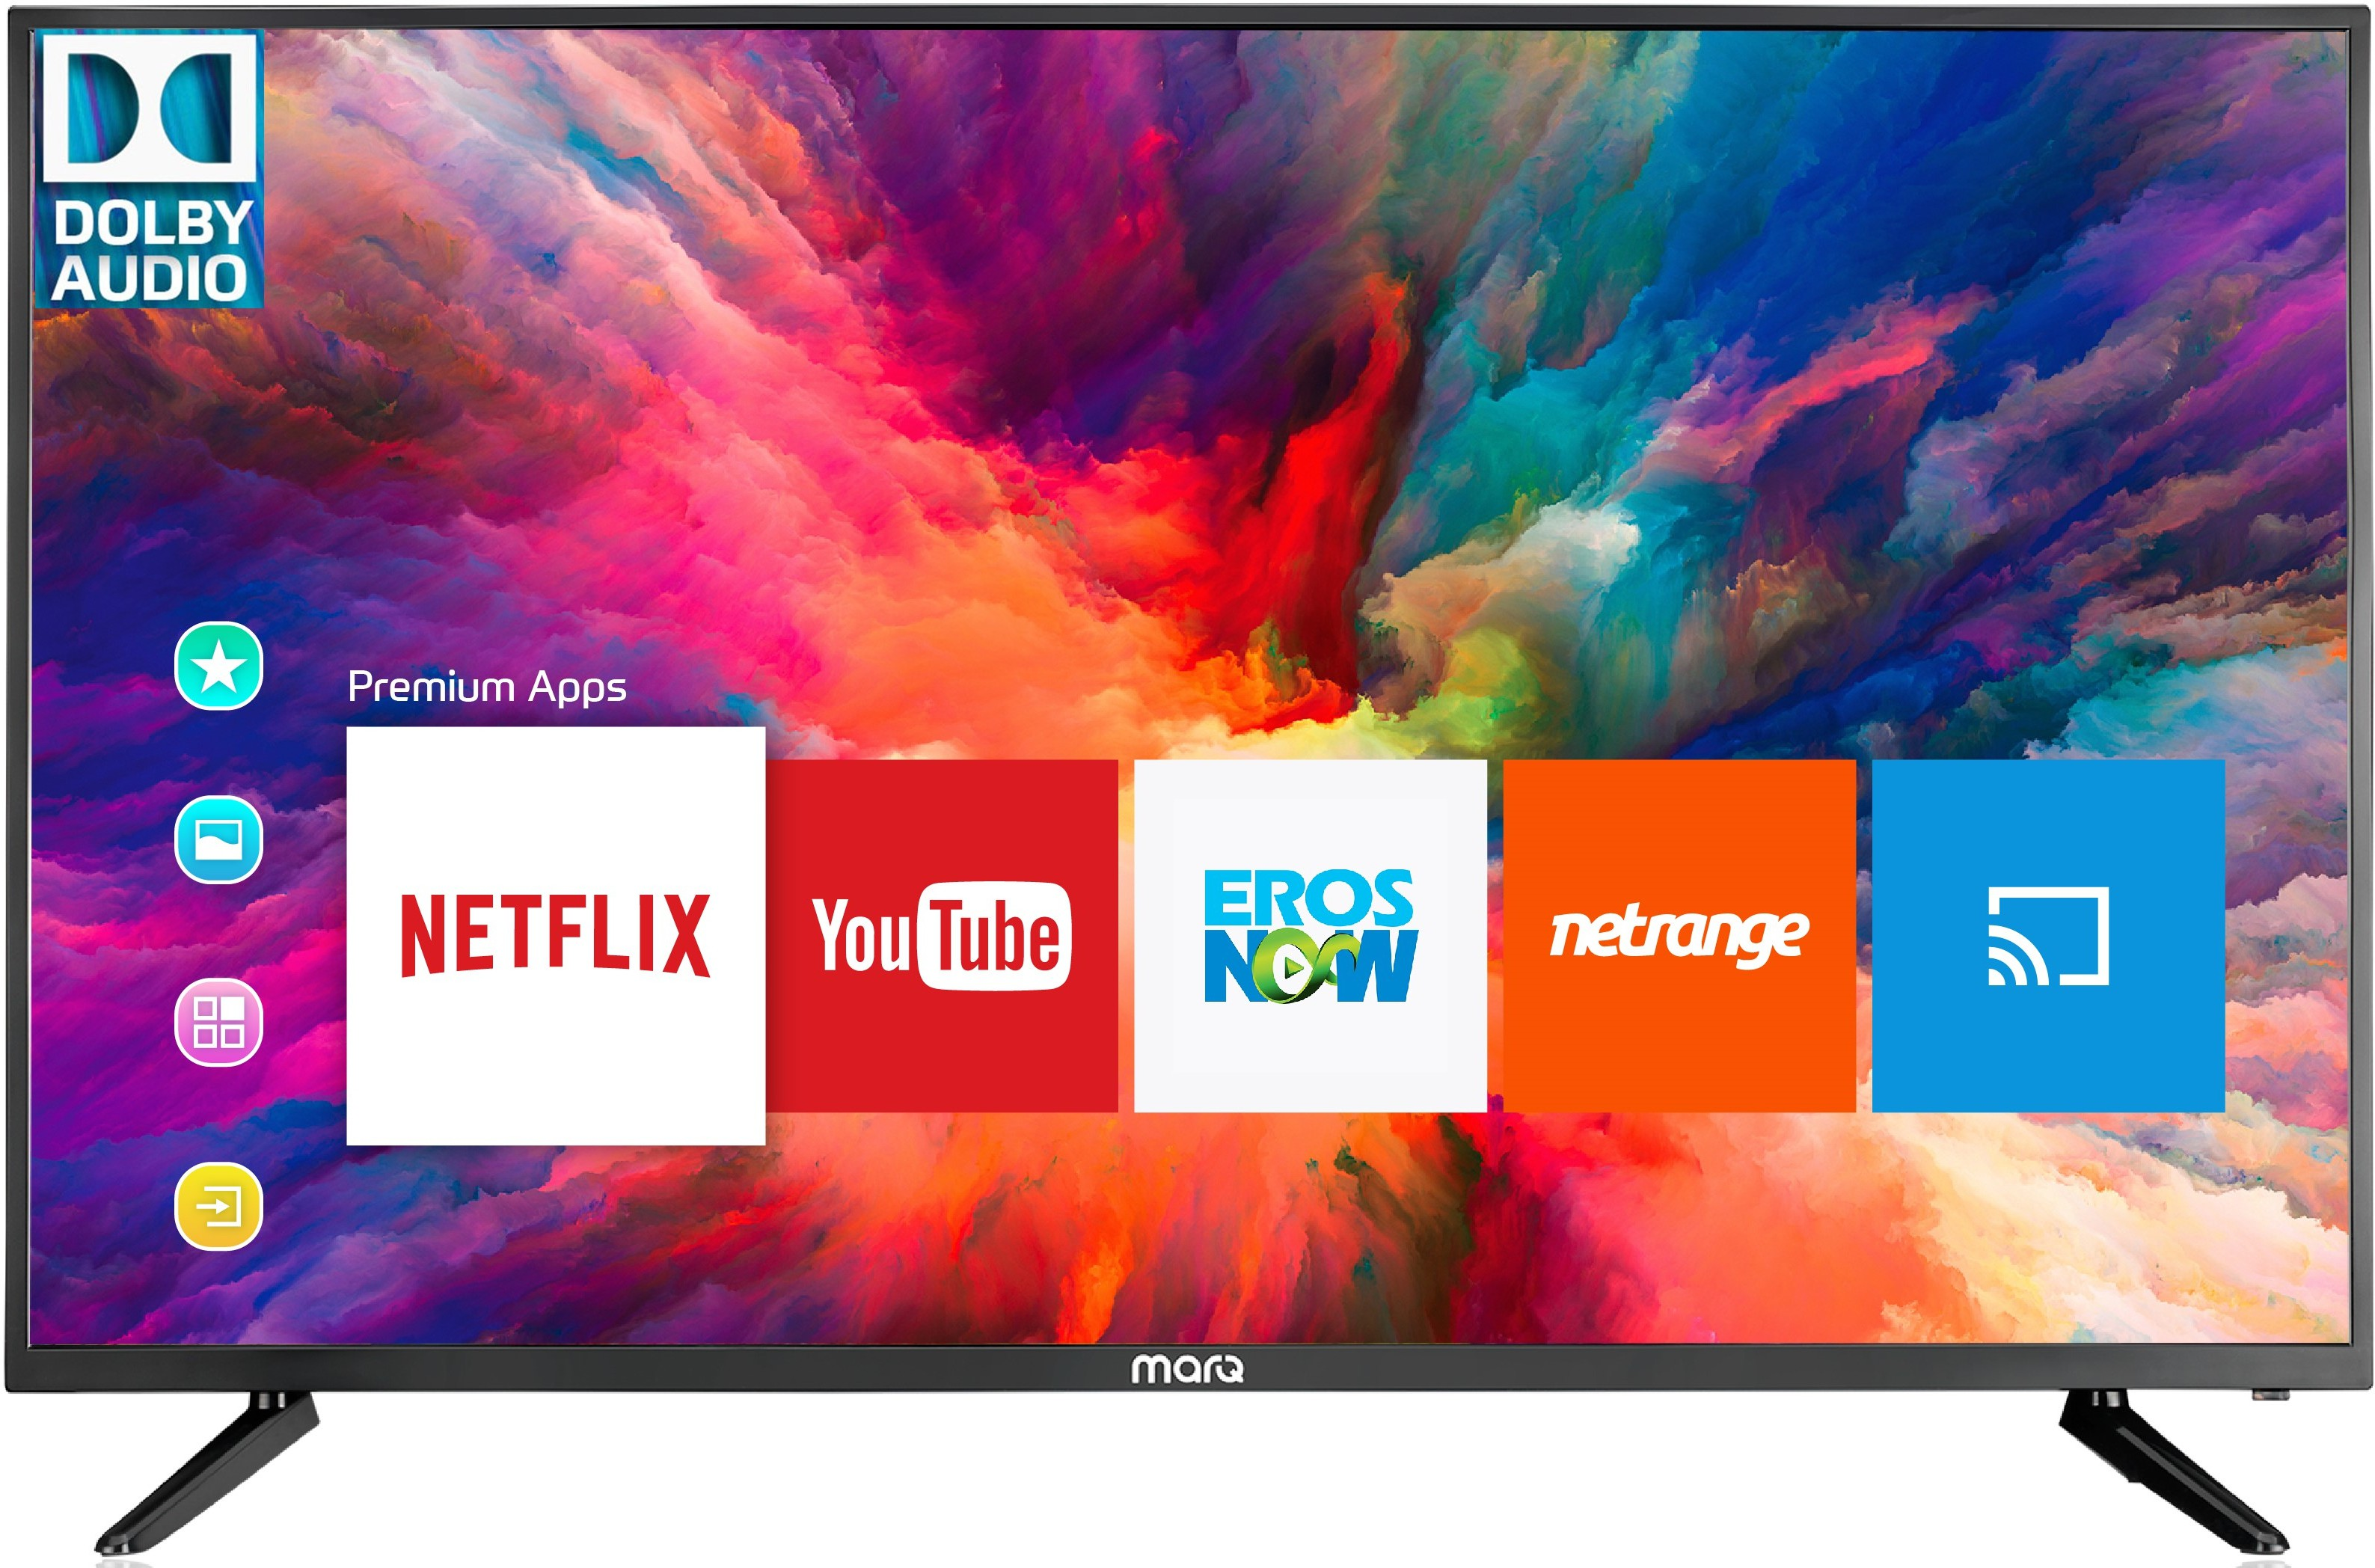 MarQ by Flipkart Dolby (43 inch) Full HD Smart LED TV Image